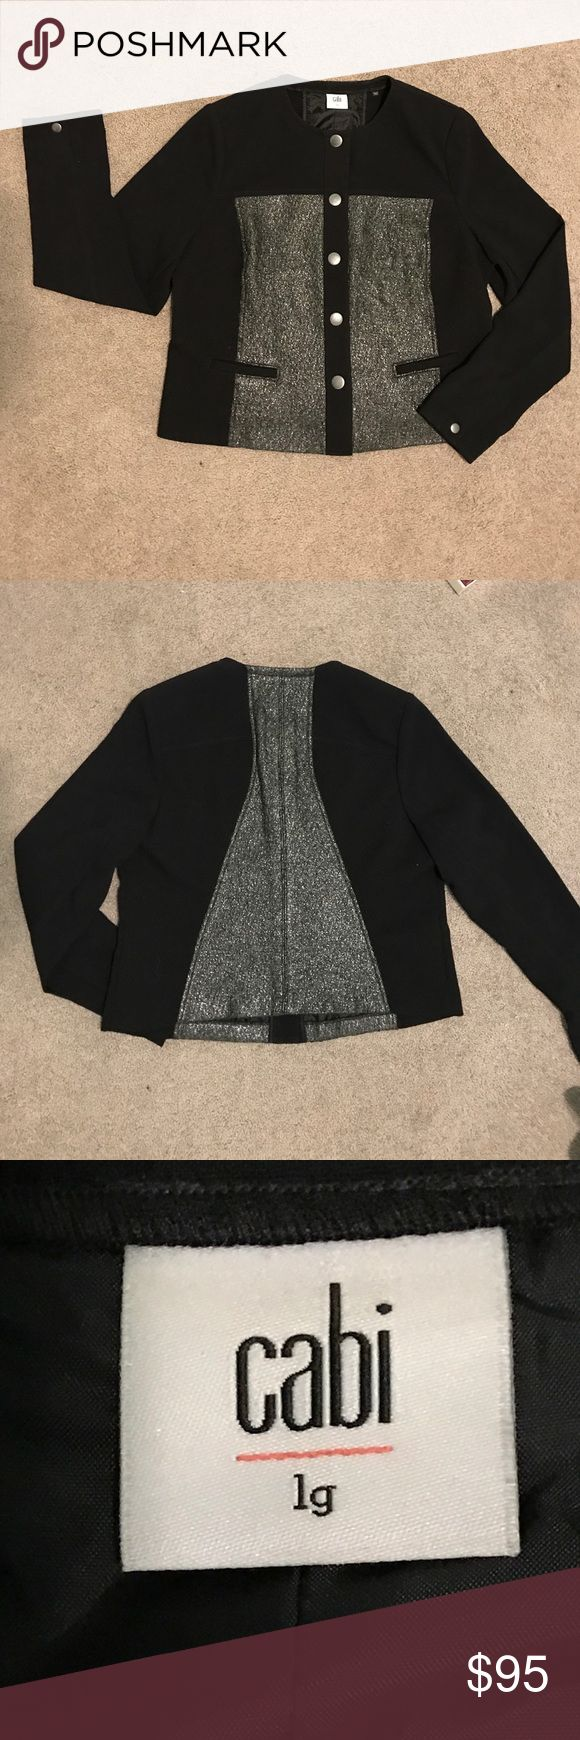 CAbi NWOT Media jacket (fall 2015) size large Beautiful and stylish blazer to add to your wardrobe. Perfect for the office for a night out on the town. Polyester/rayon/spandex blend. Machine washable. CAbi Jackets & Coats